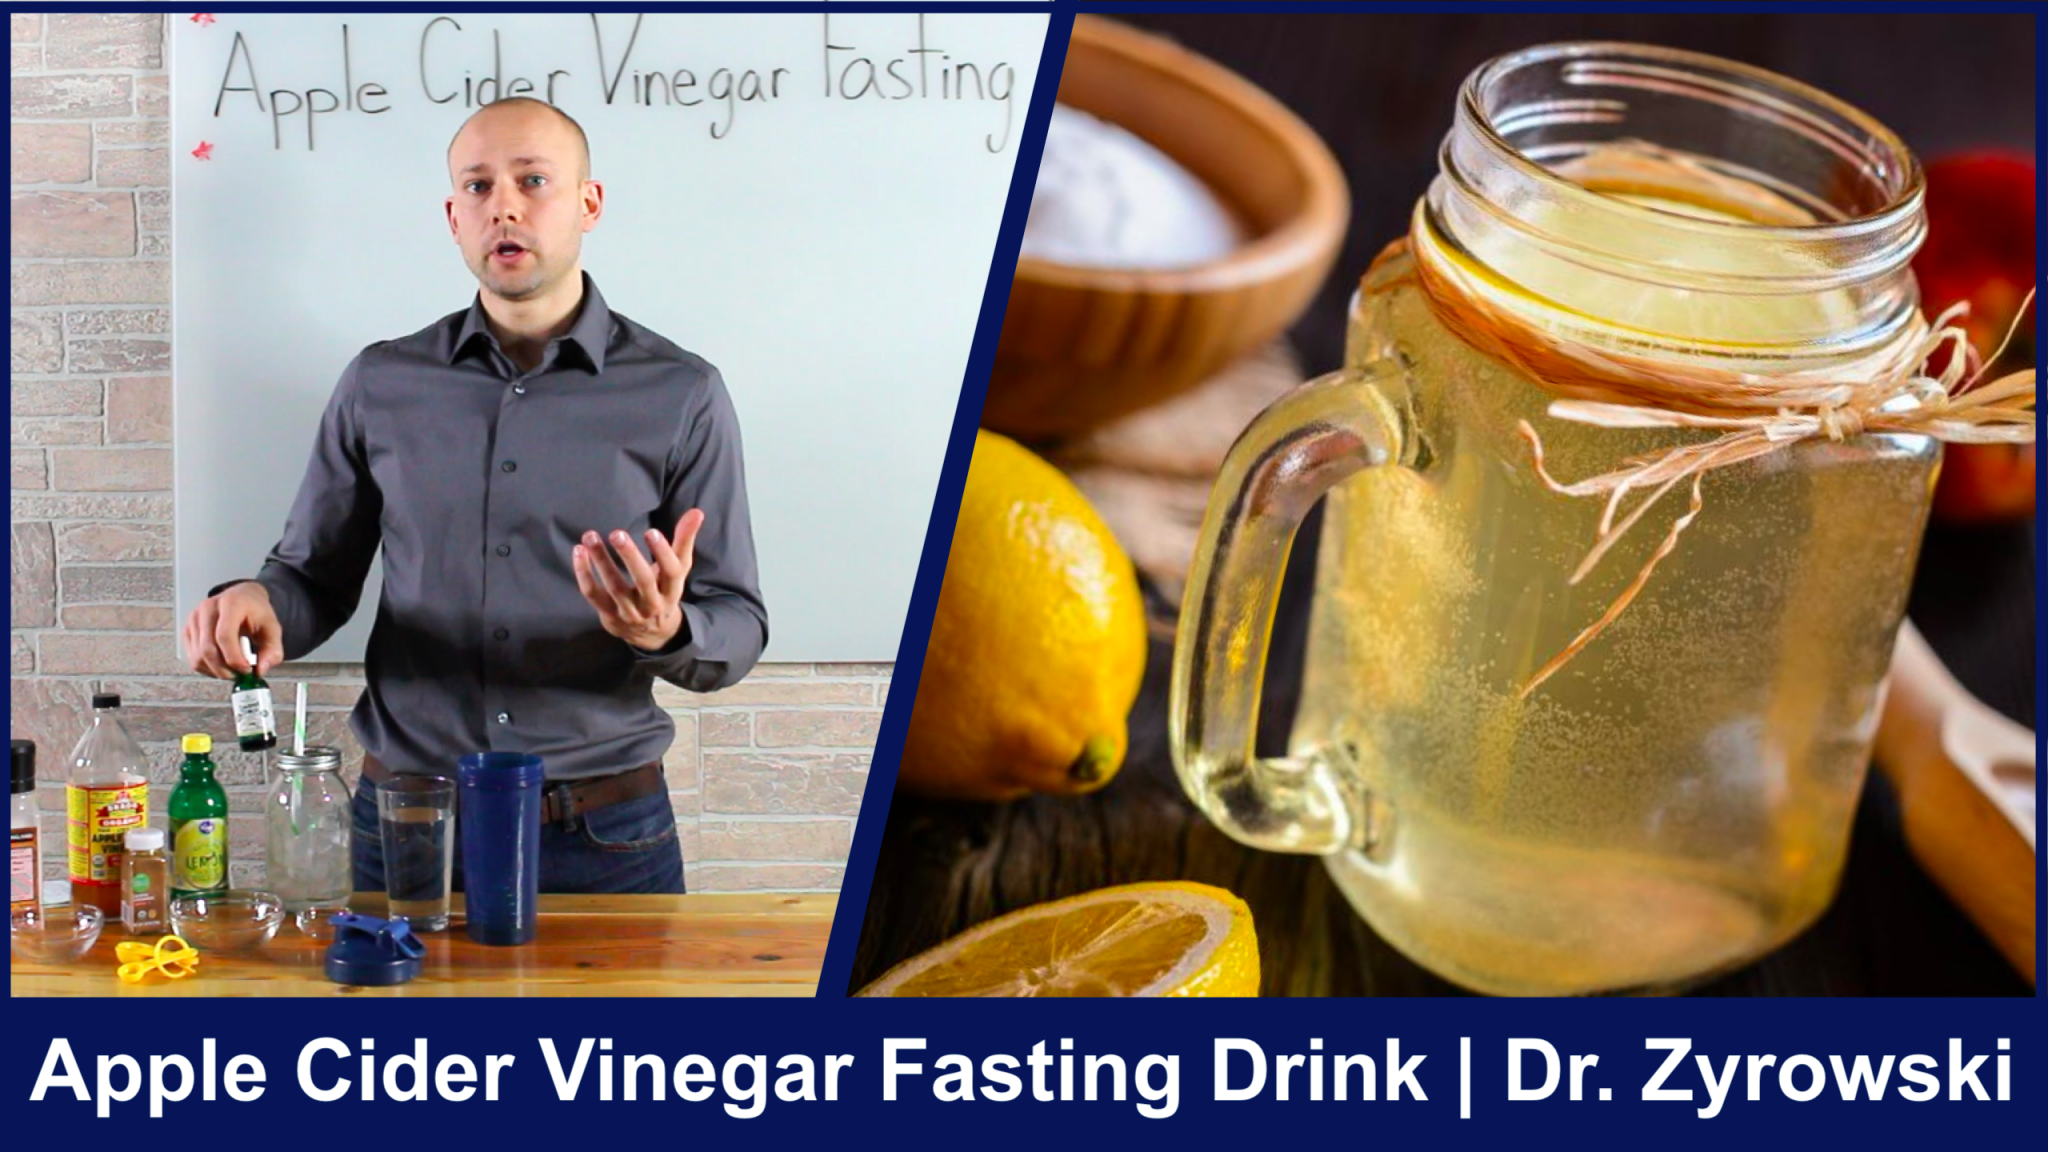 Apple Cider Vinegar Fasting Drink